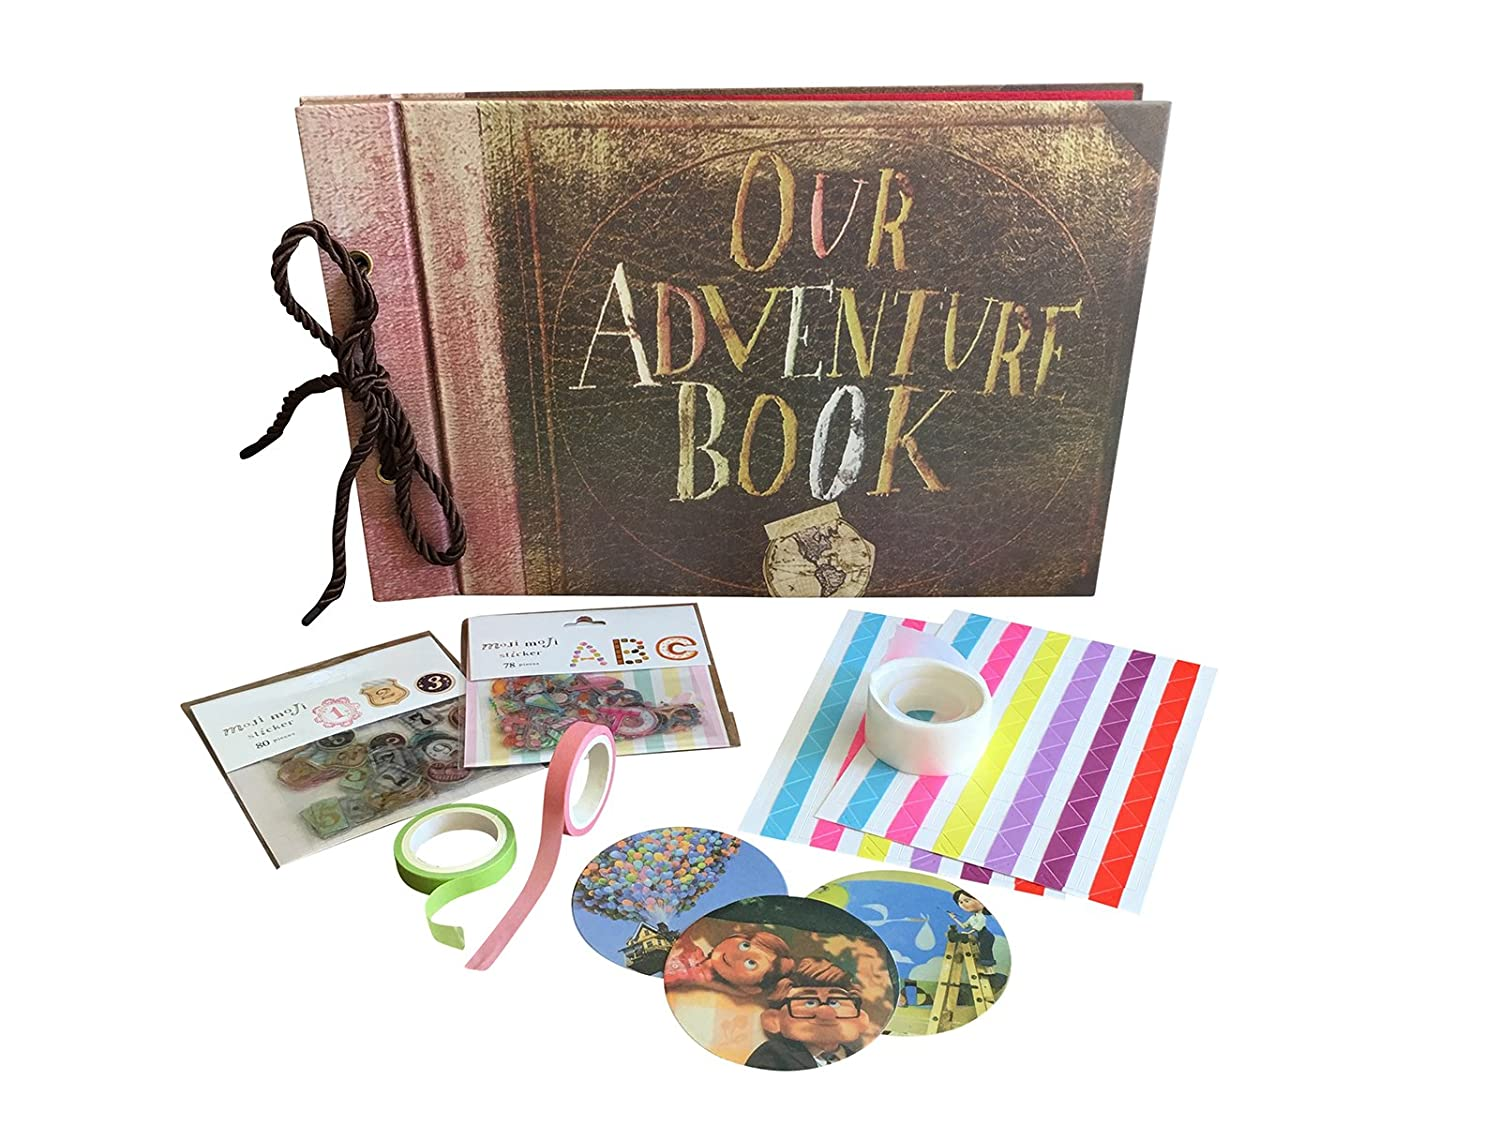 Our Adventure Book - Up Pixar Movie DIY Scrapbook With Glue Dots, Letter,  Number and Assorted Corner Stickers  Create the Perfect Family,  Anniversary,